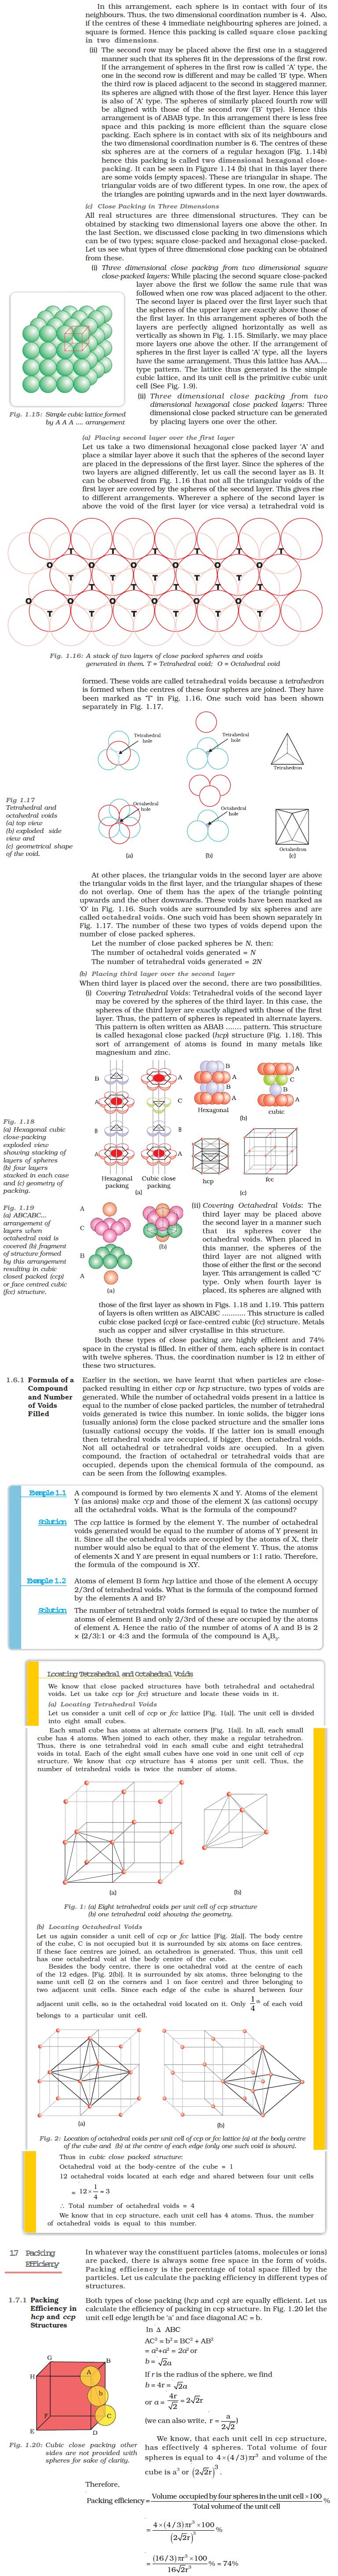 NCERT Class XII Chemistry Chapter 1 - The Solid State